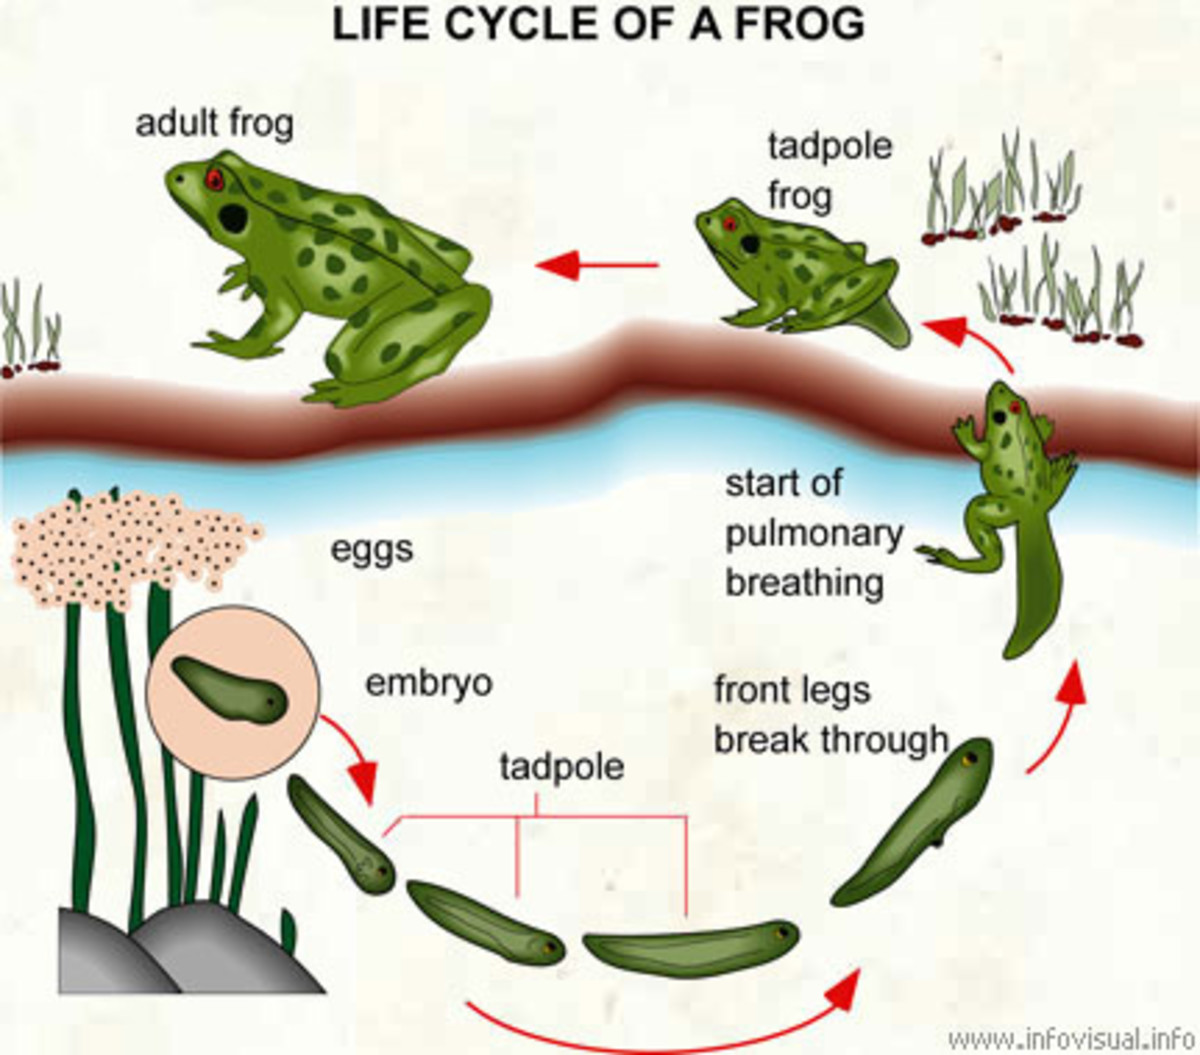 Life Cycle Of A Frog: From Tadpole To Frog